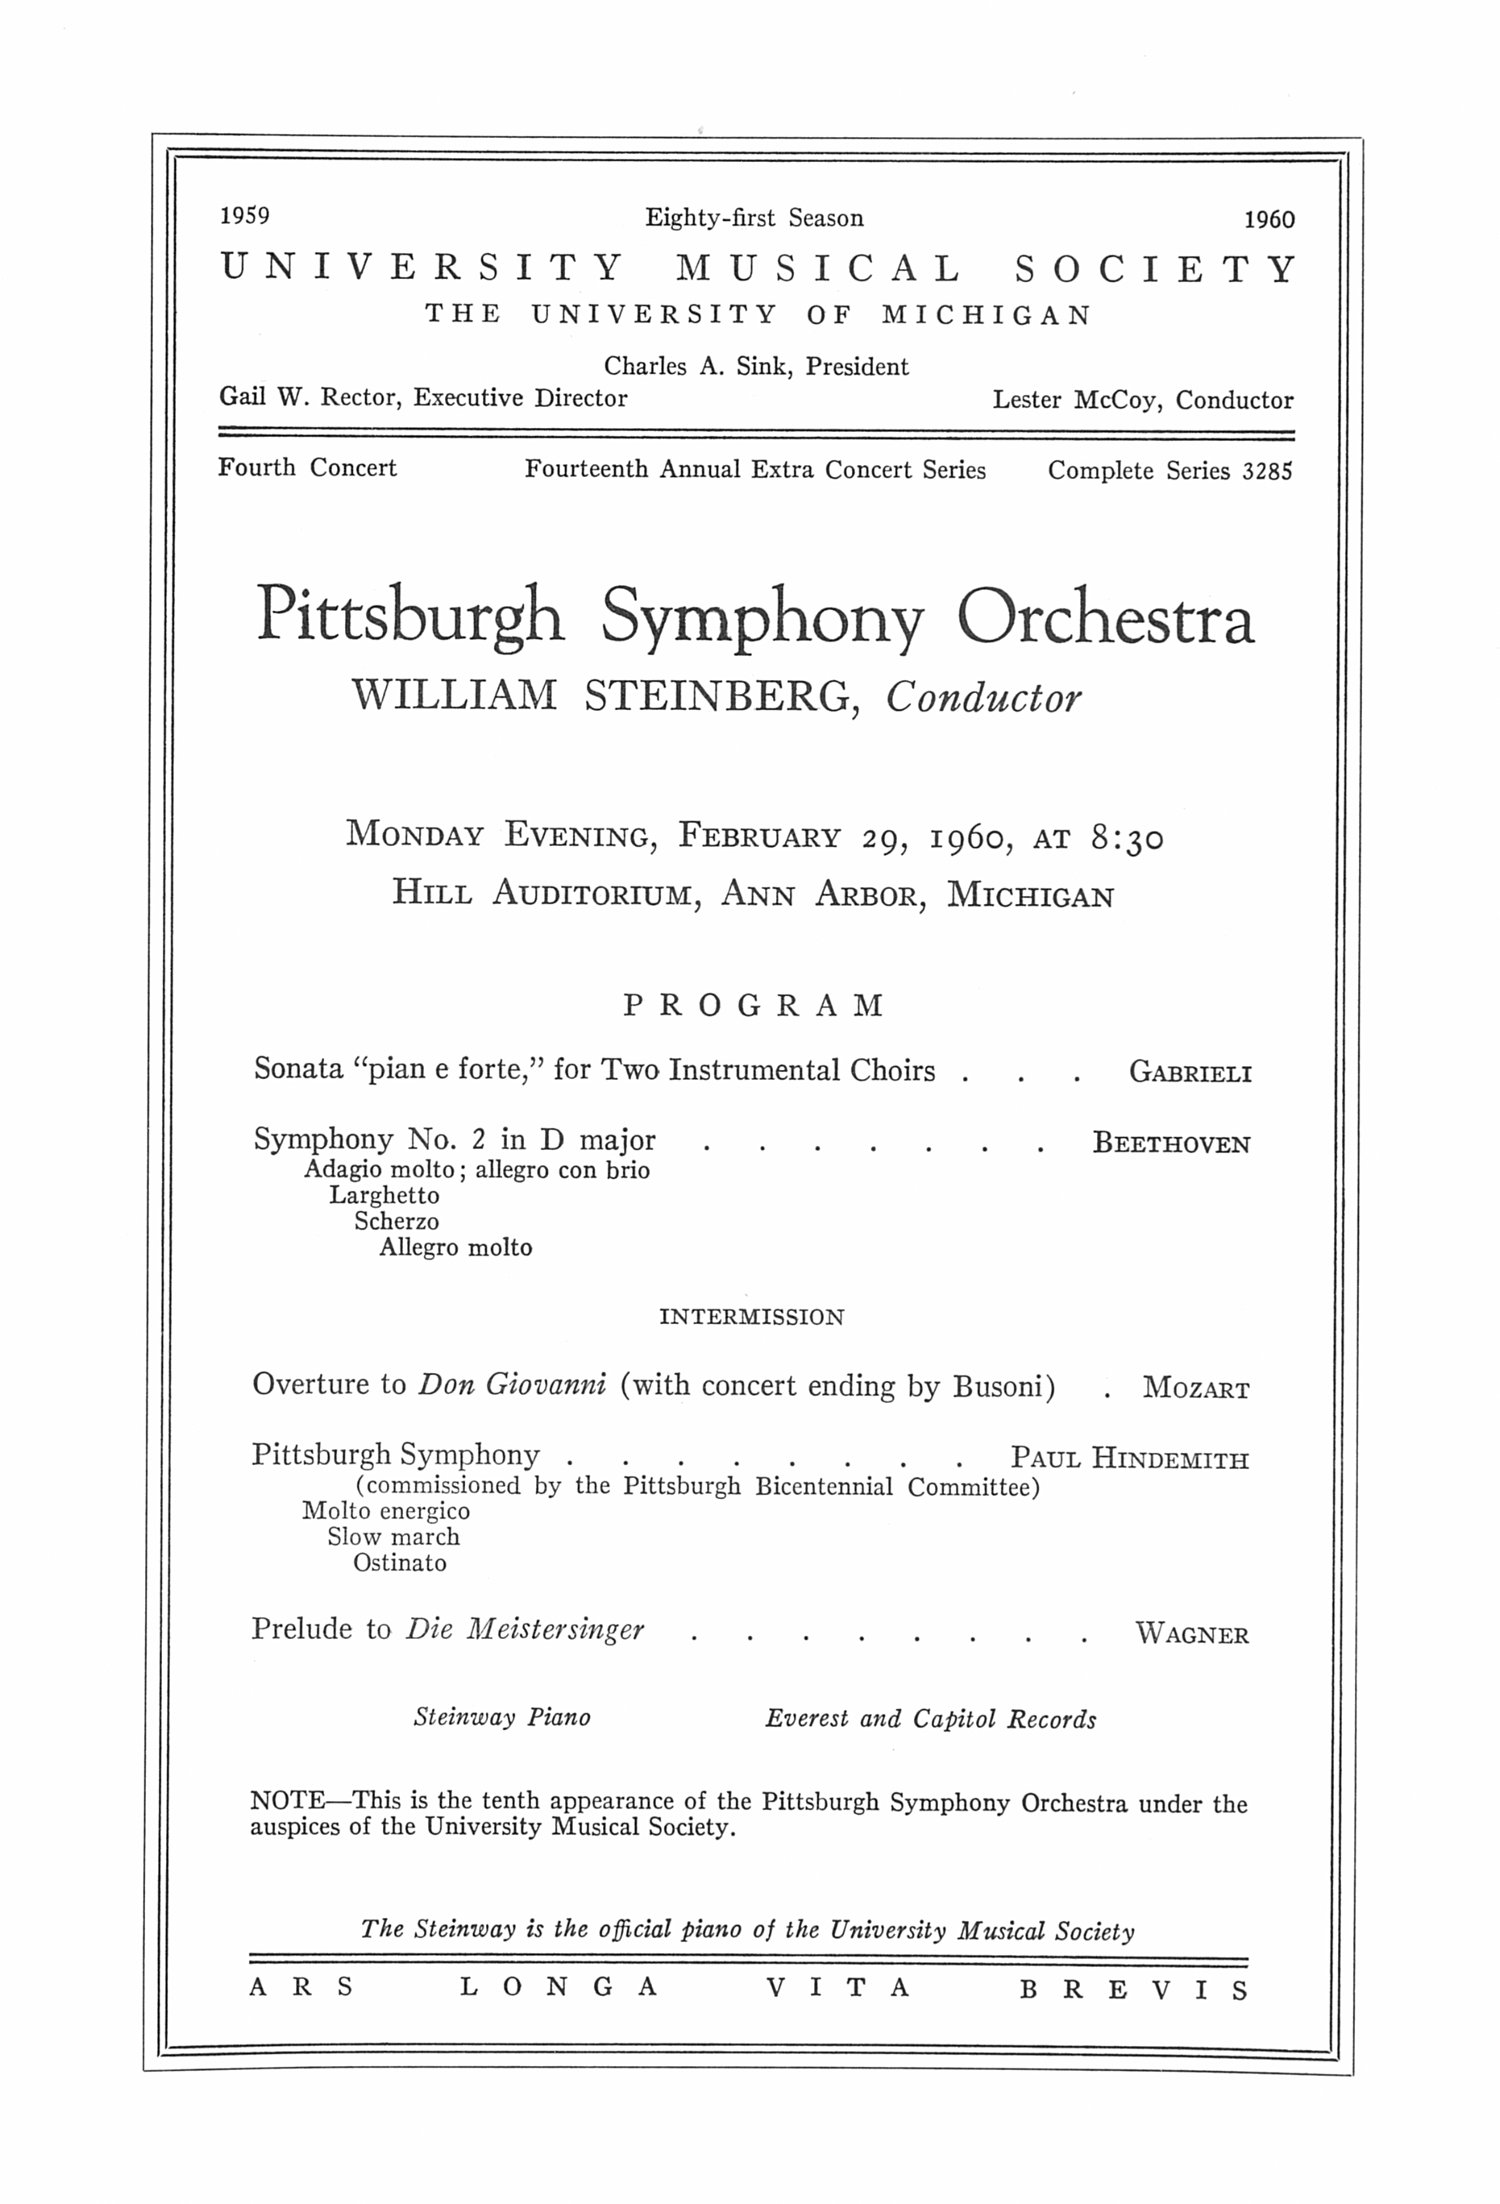 UMS Concert Program, February 29, 1960: Pittsburgh Symphony Orchestra --  image